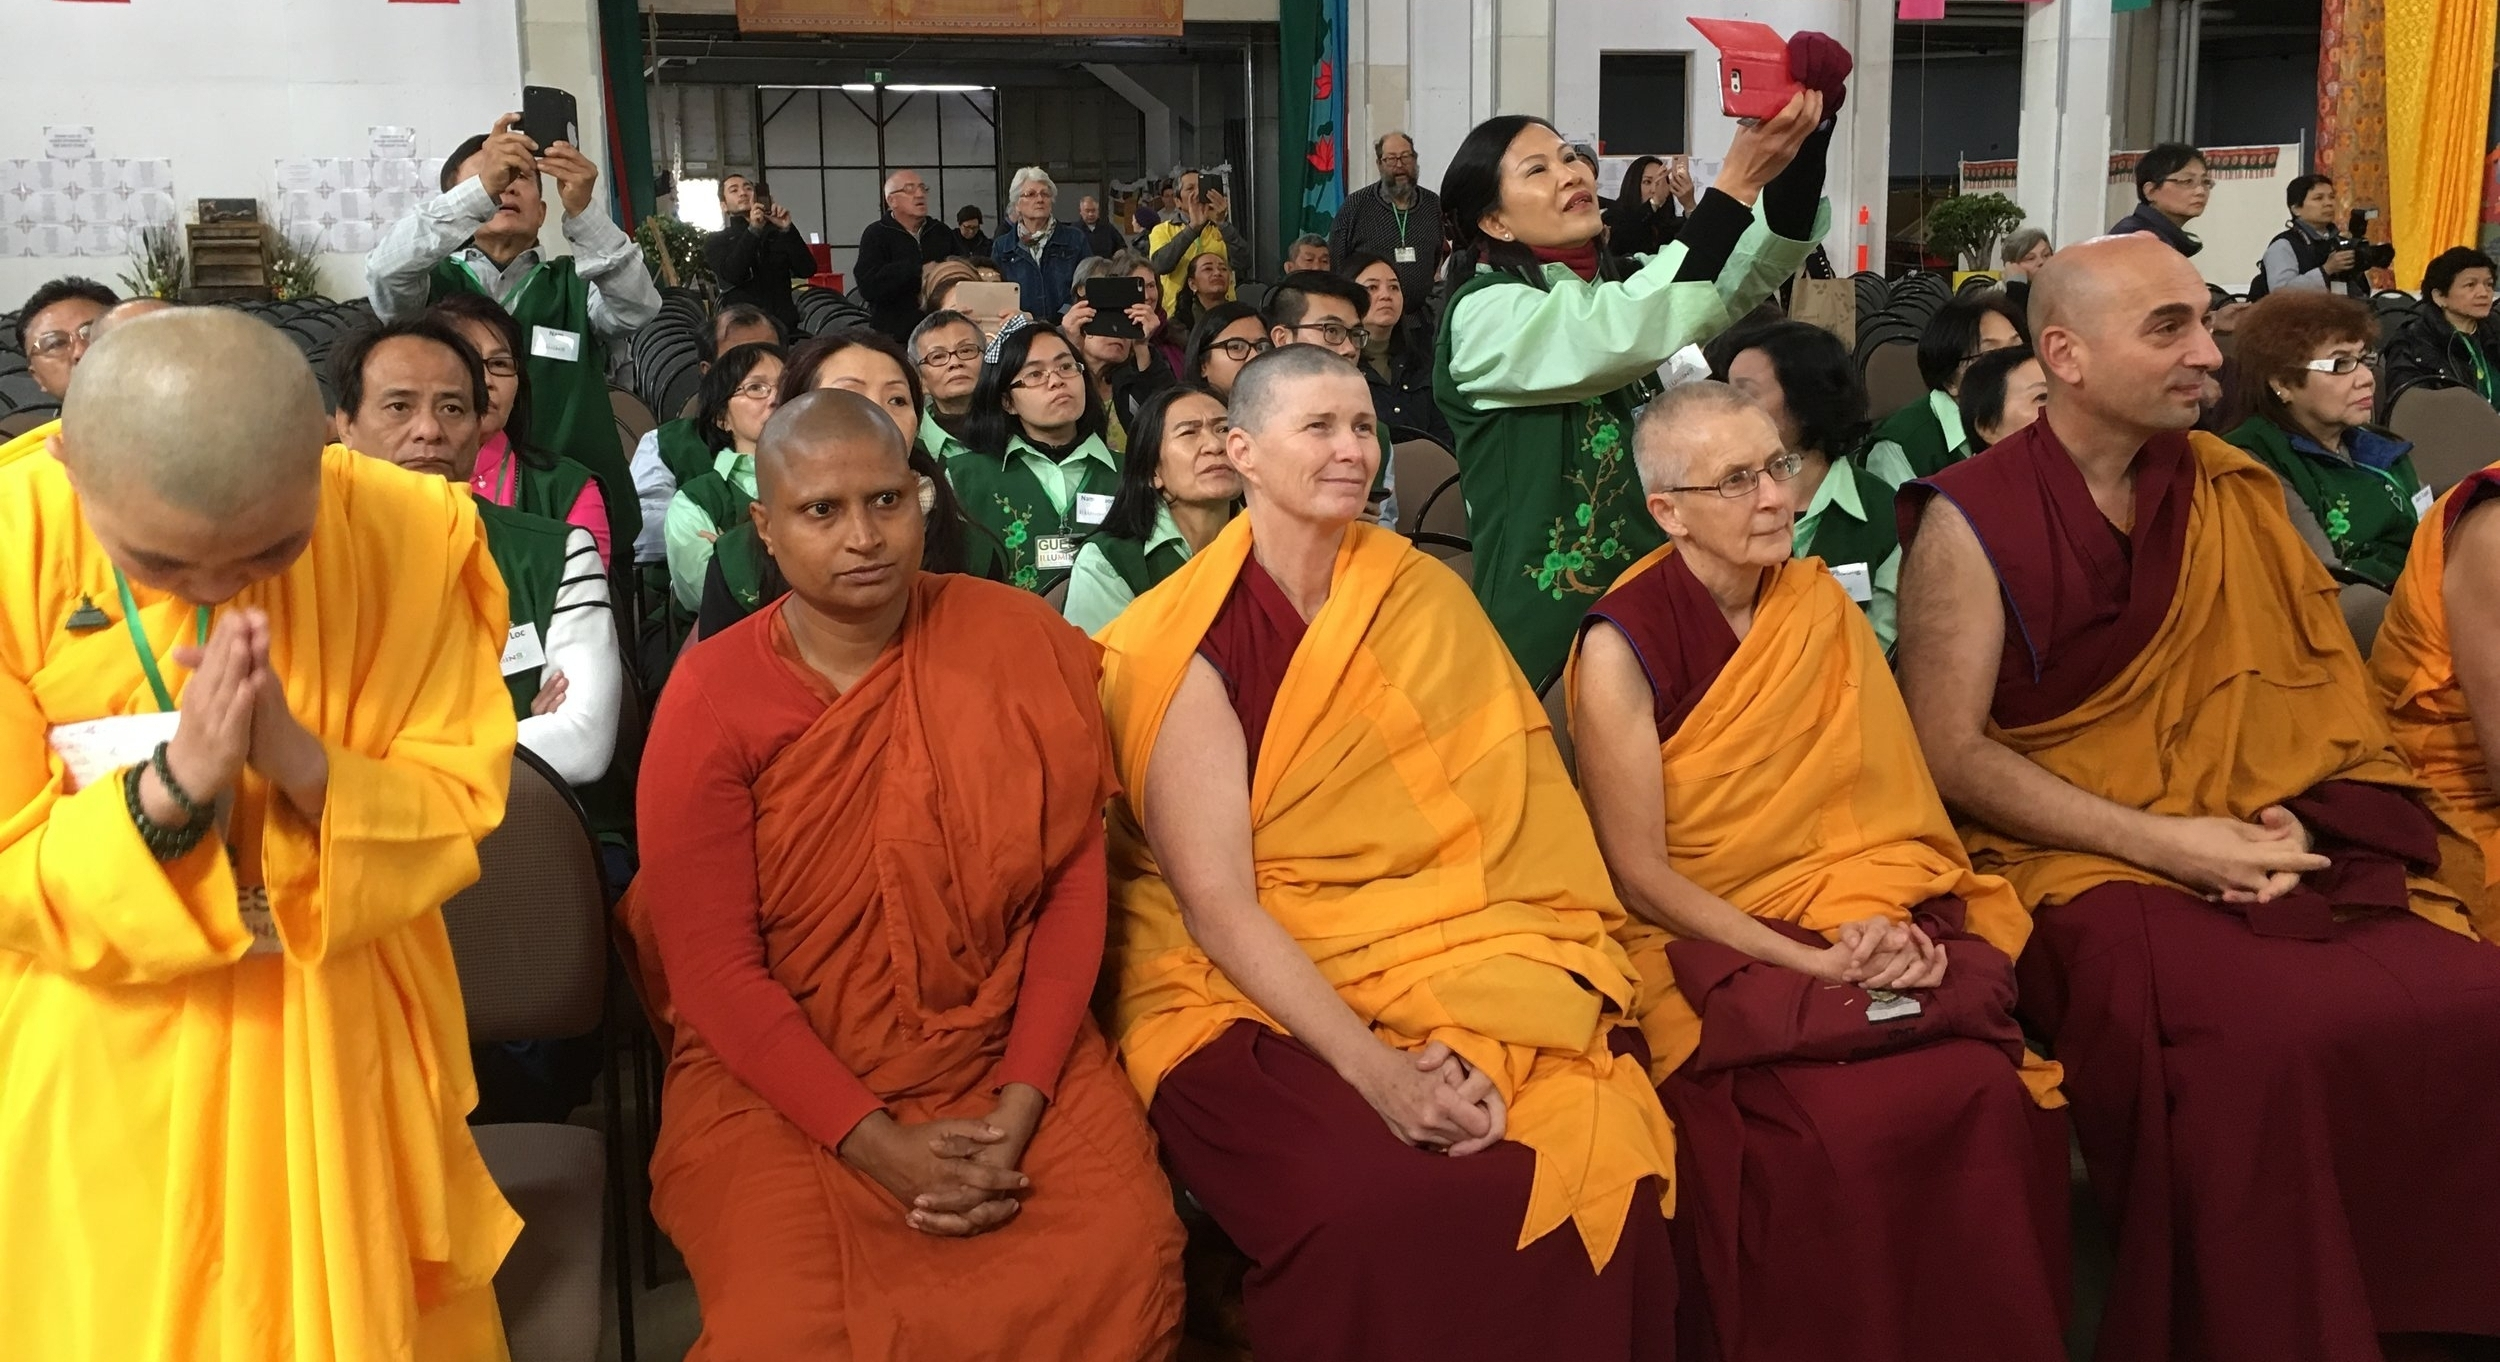 Buddhist Nuns and Monks waiting the unveiling of the Jade Buddha